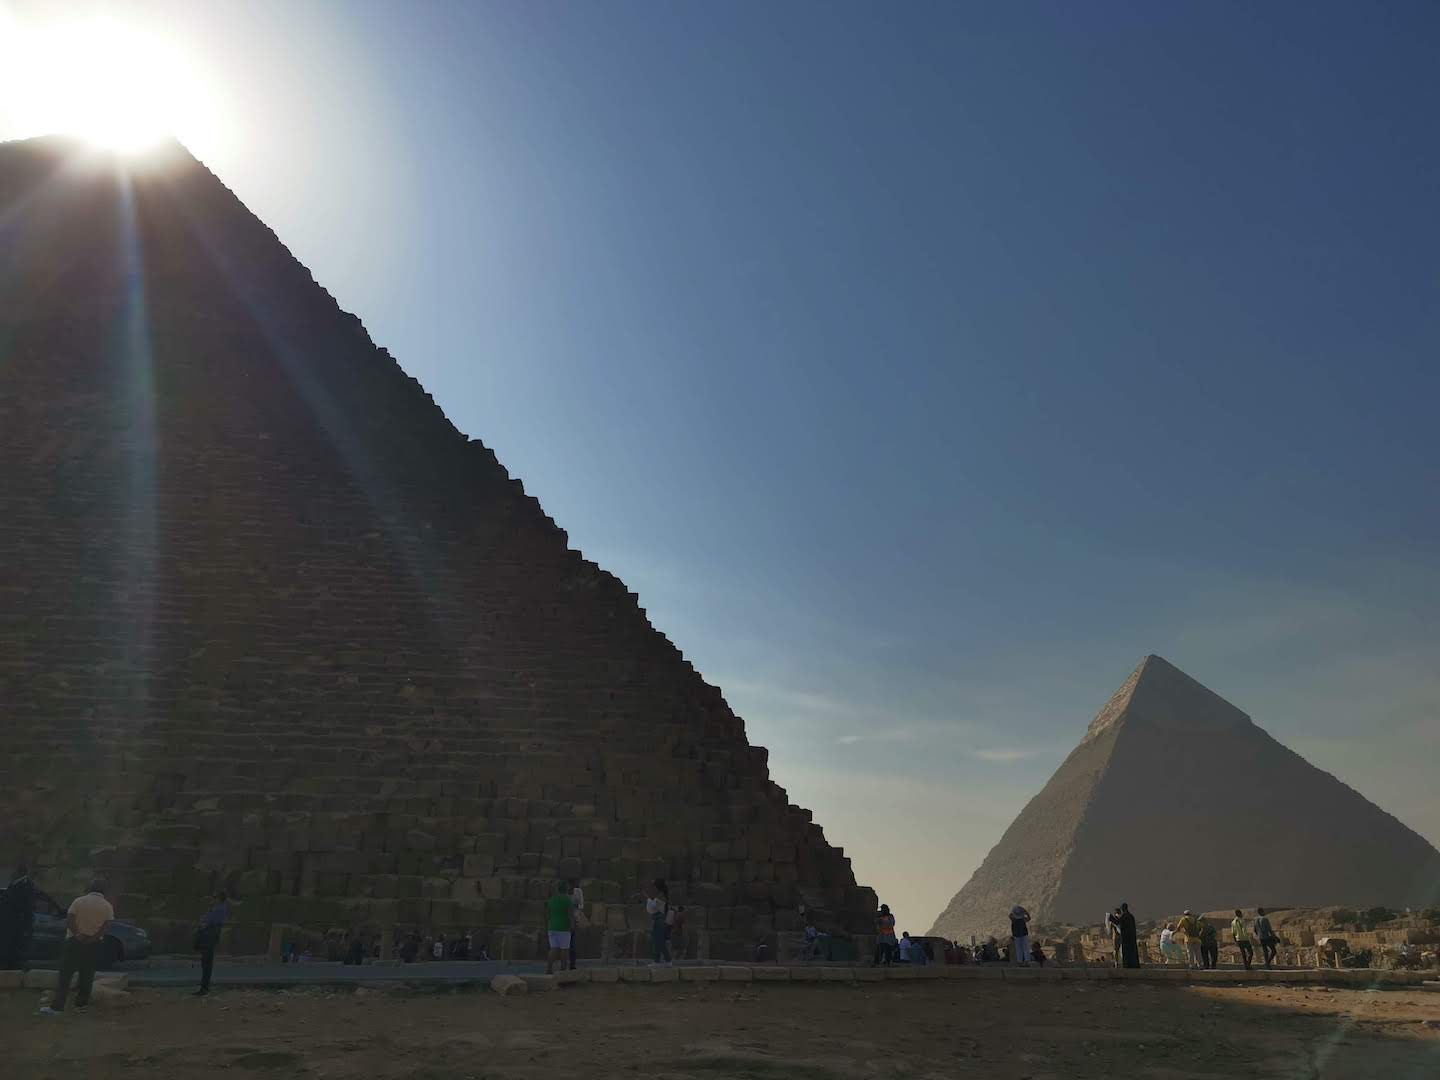 Sun rising over pyramid